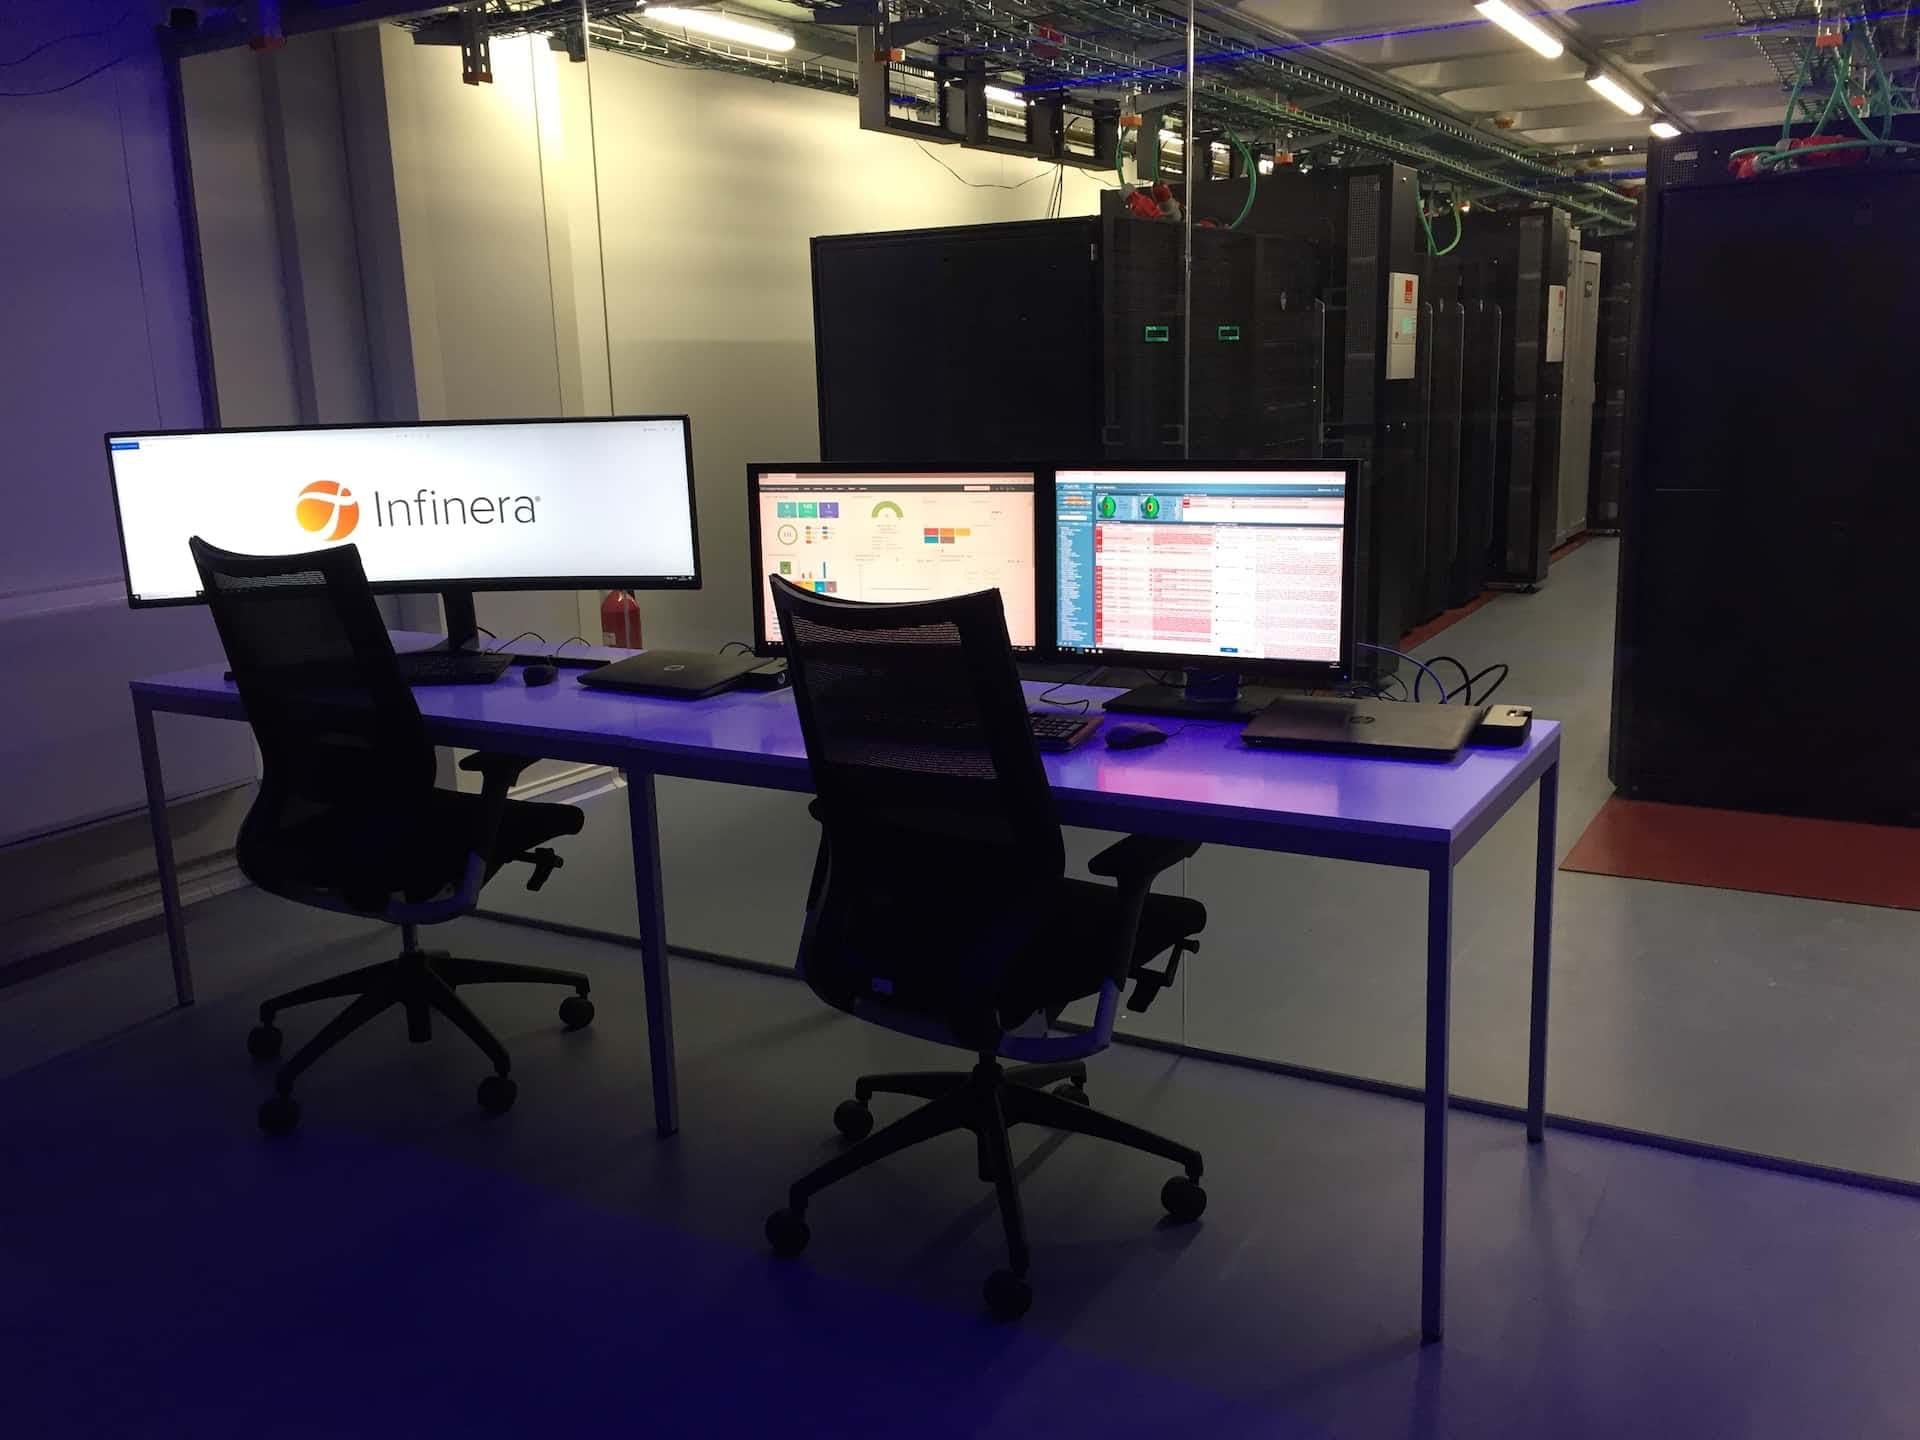 Data Center Infinera